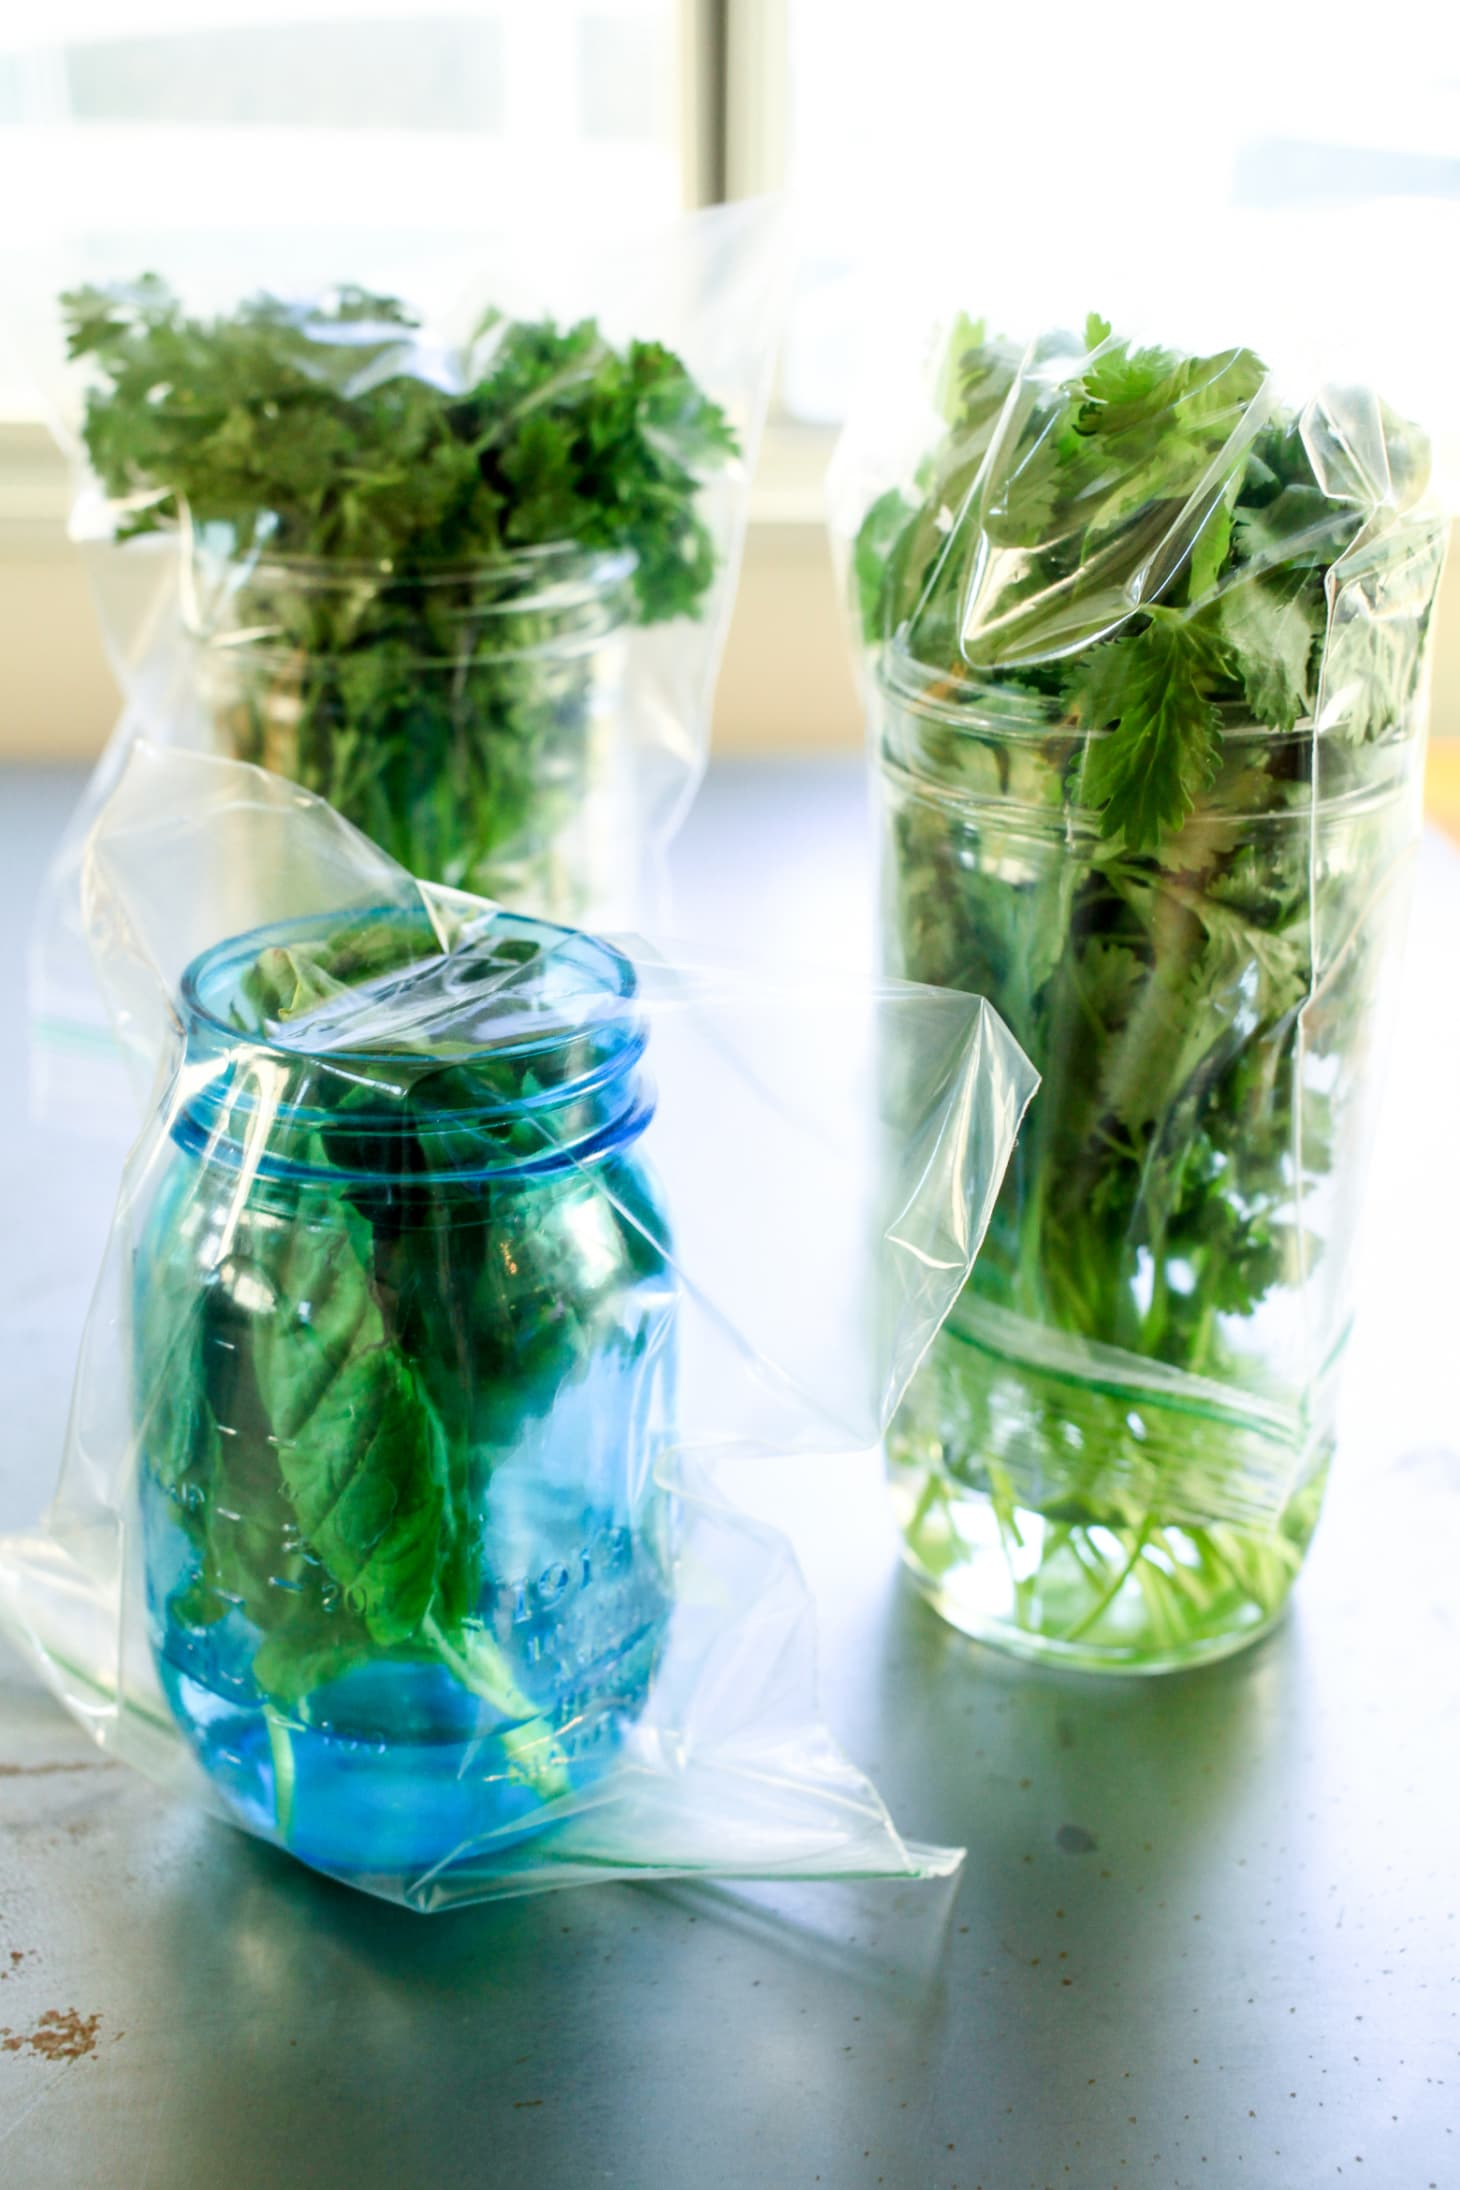 Superb 8 Ways To Use Mason Jars In The Kitchen Kitchn Home Interior And Landscaping Ologienasavecom